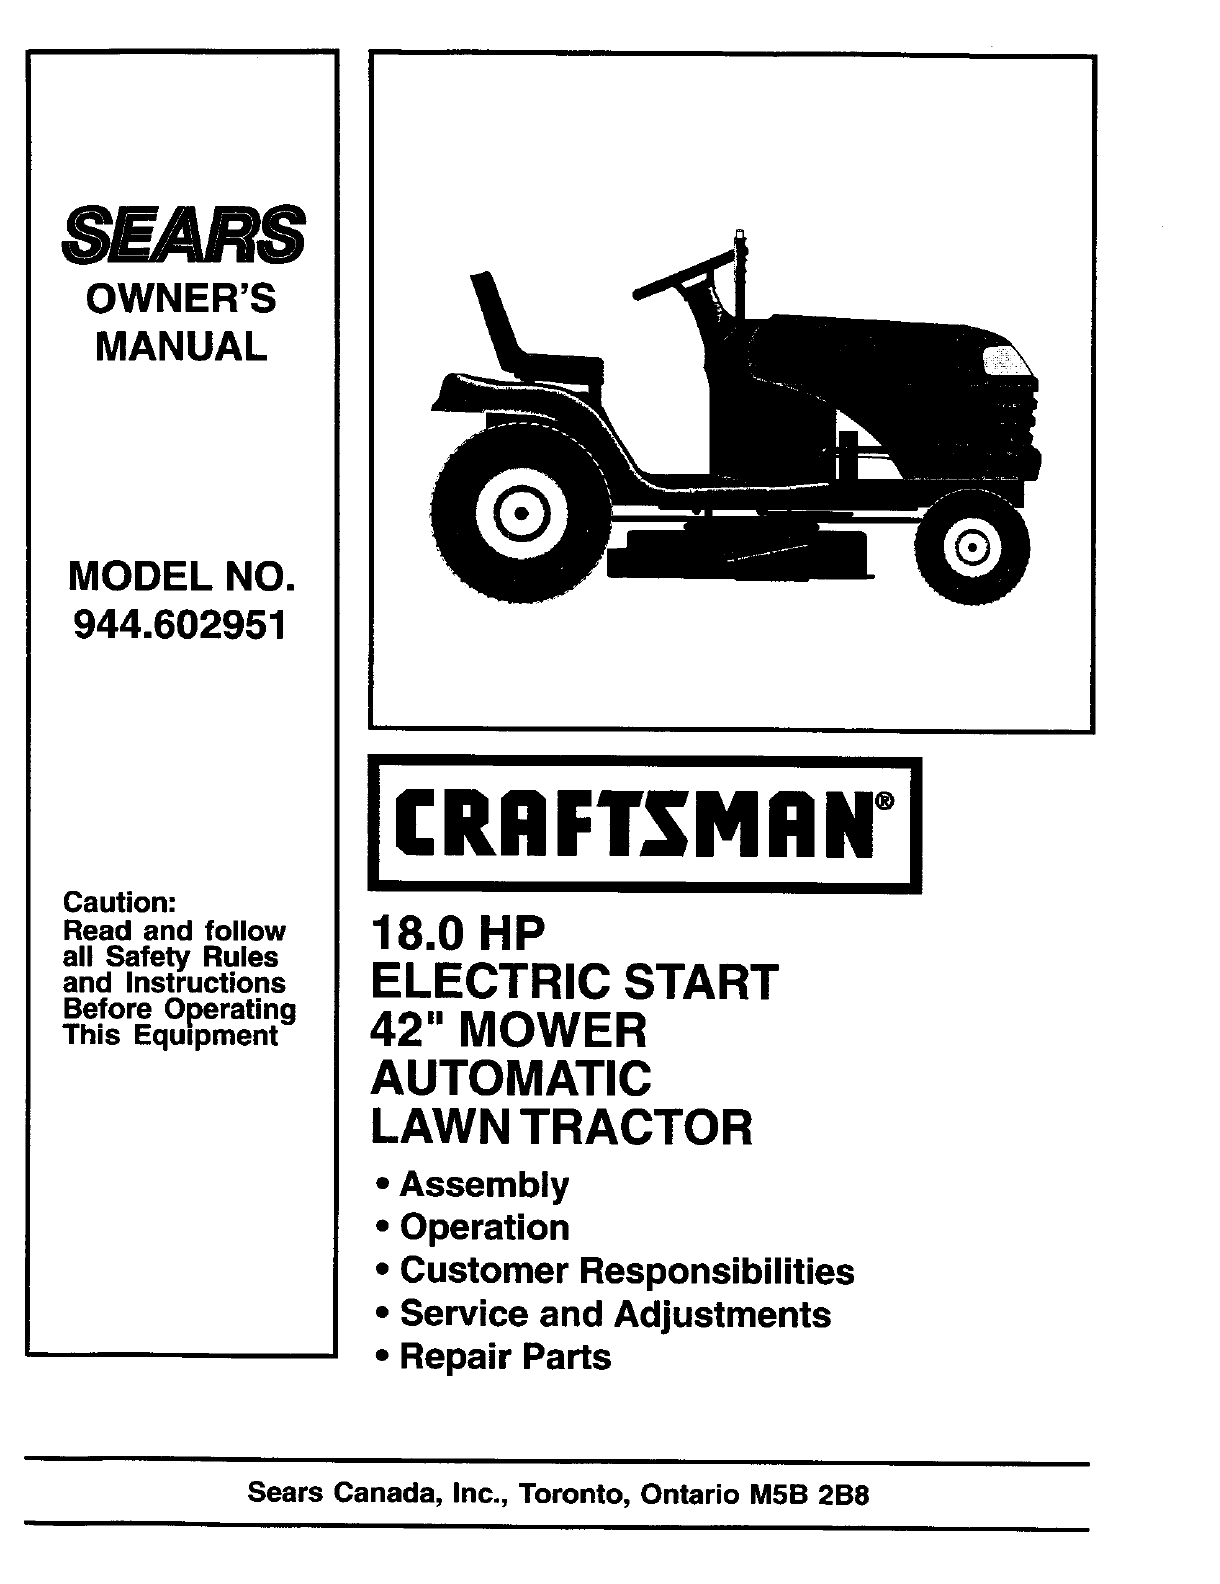 Craftsman Tractor Manuals Auto Electrical Wiring Diagram Murray Lawn Harness Riding Mower Parts